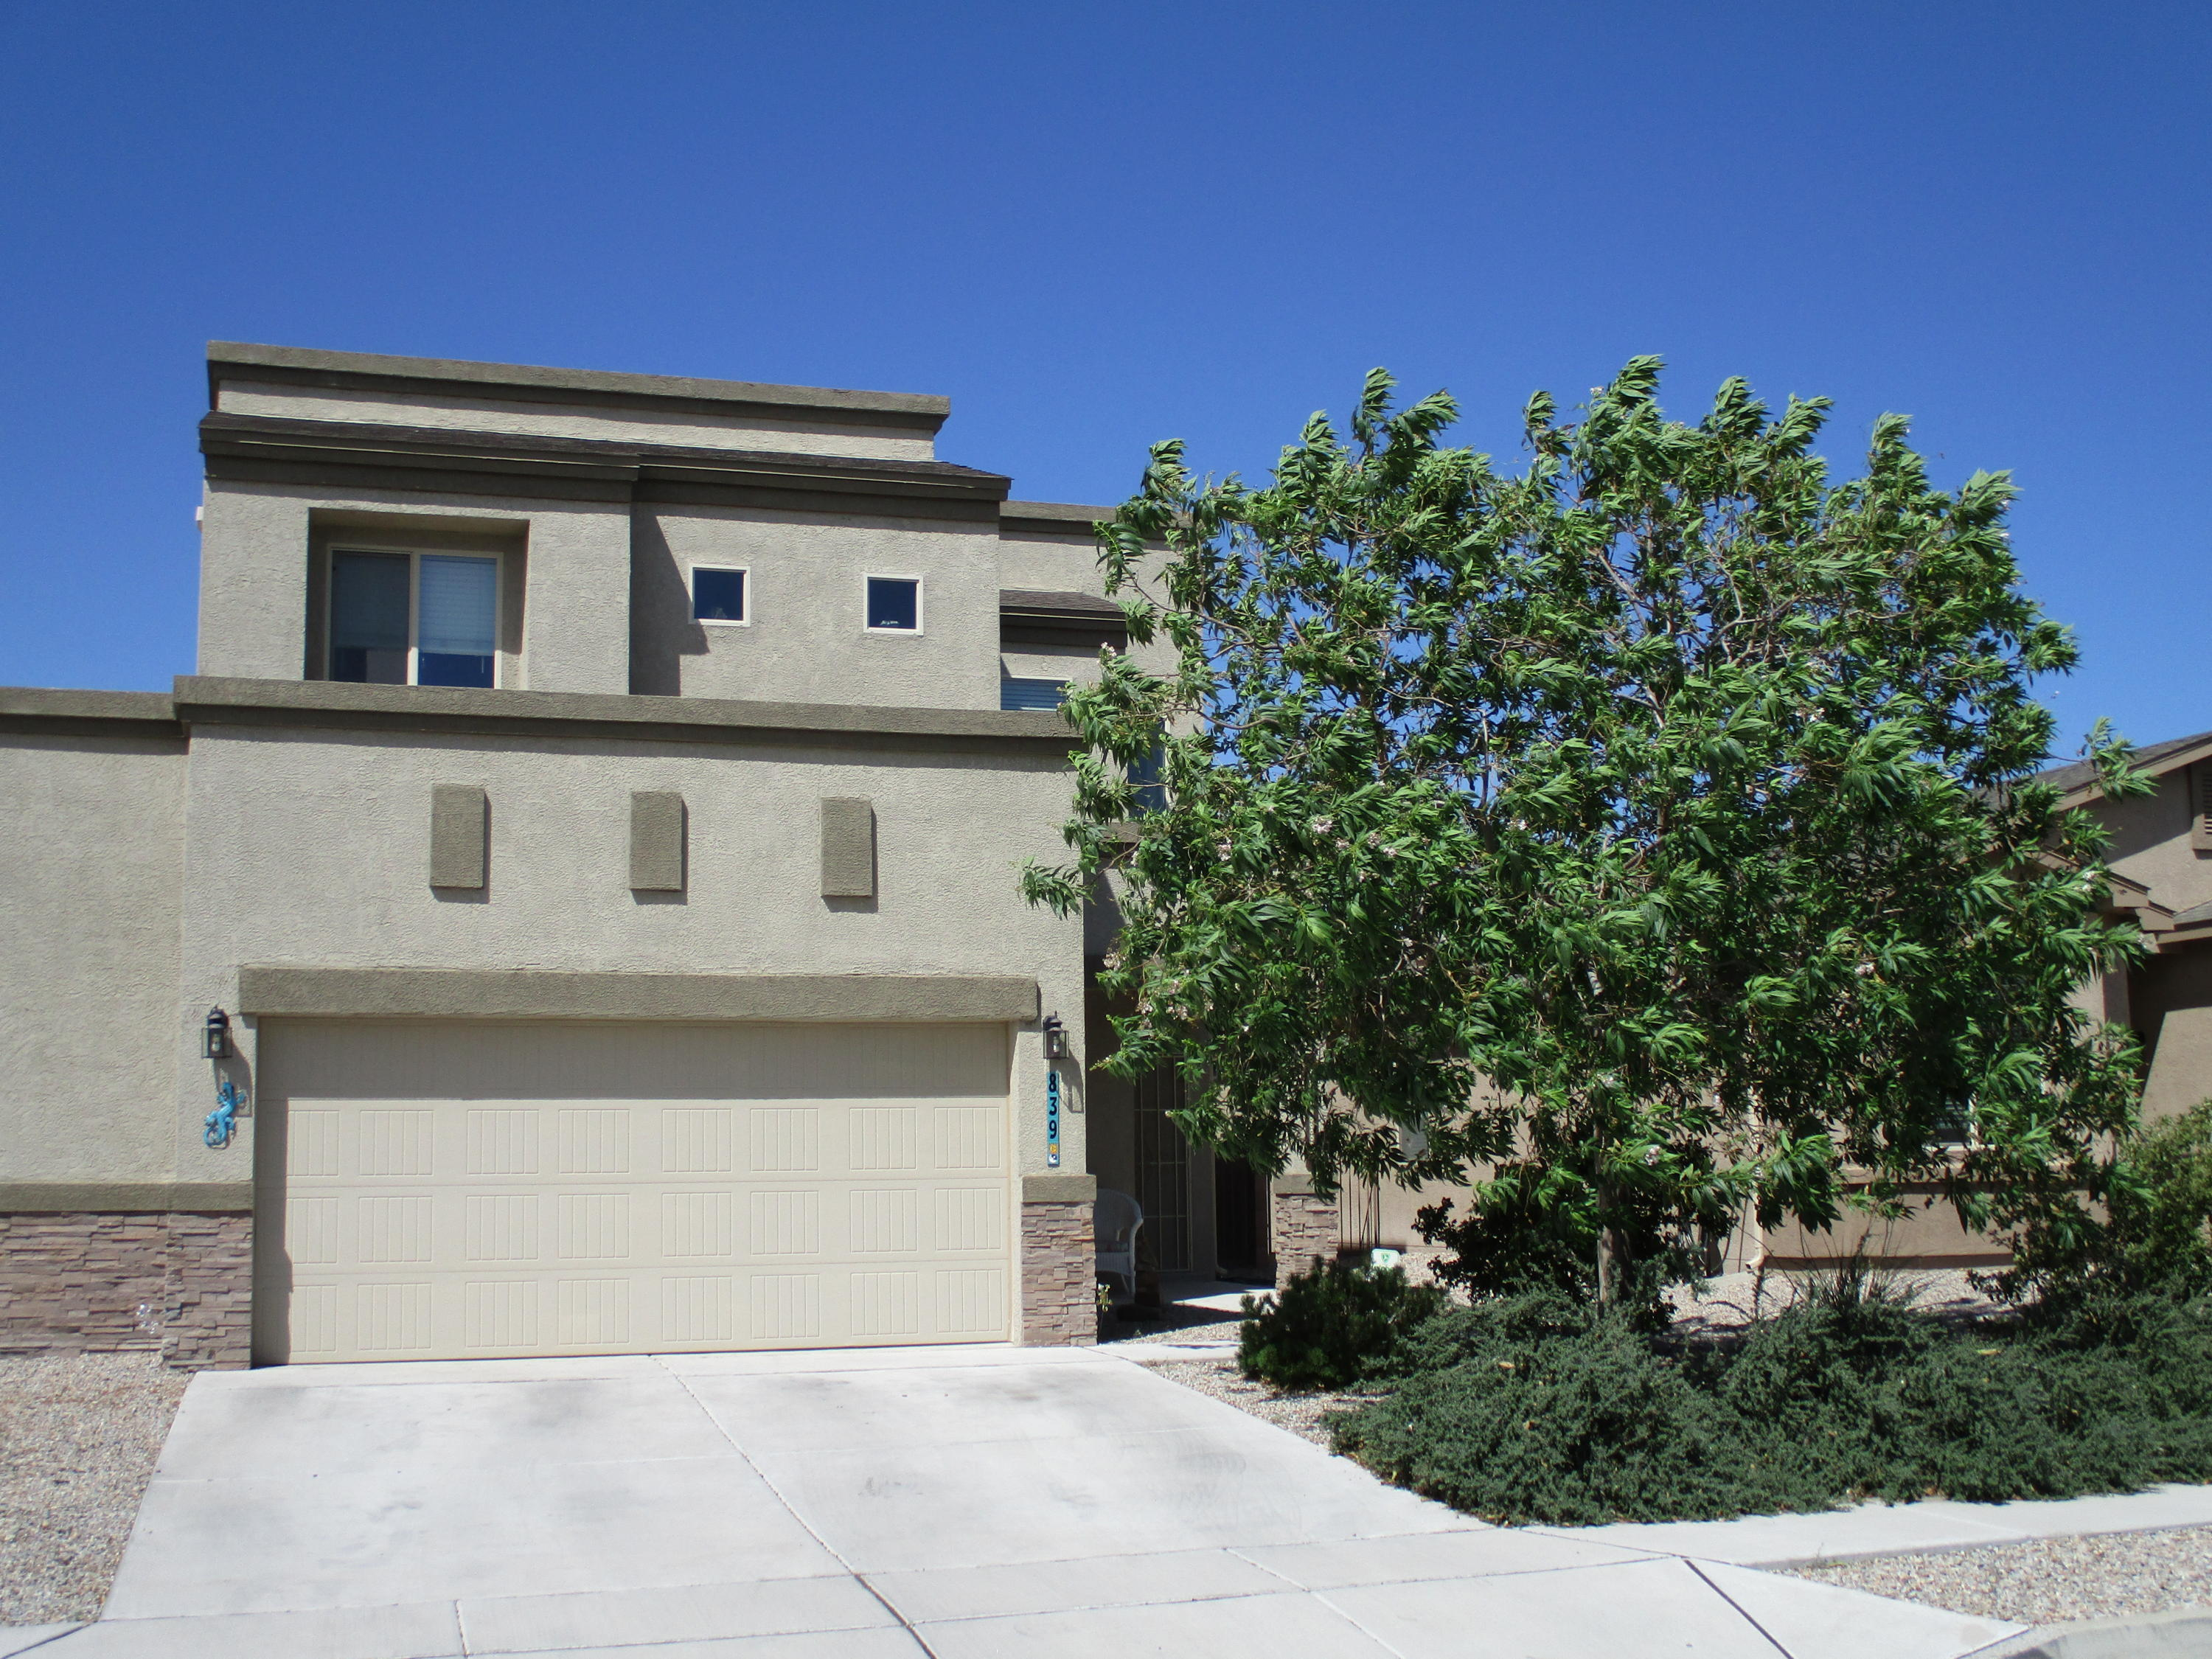 839 NW Kipuka Drive, Northwest Albuquerque and Northwest Heights, New Mexico